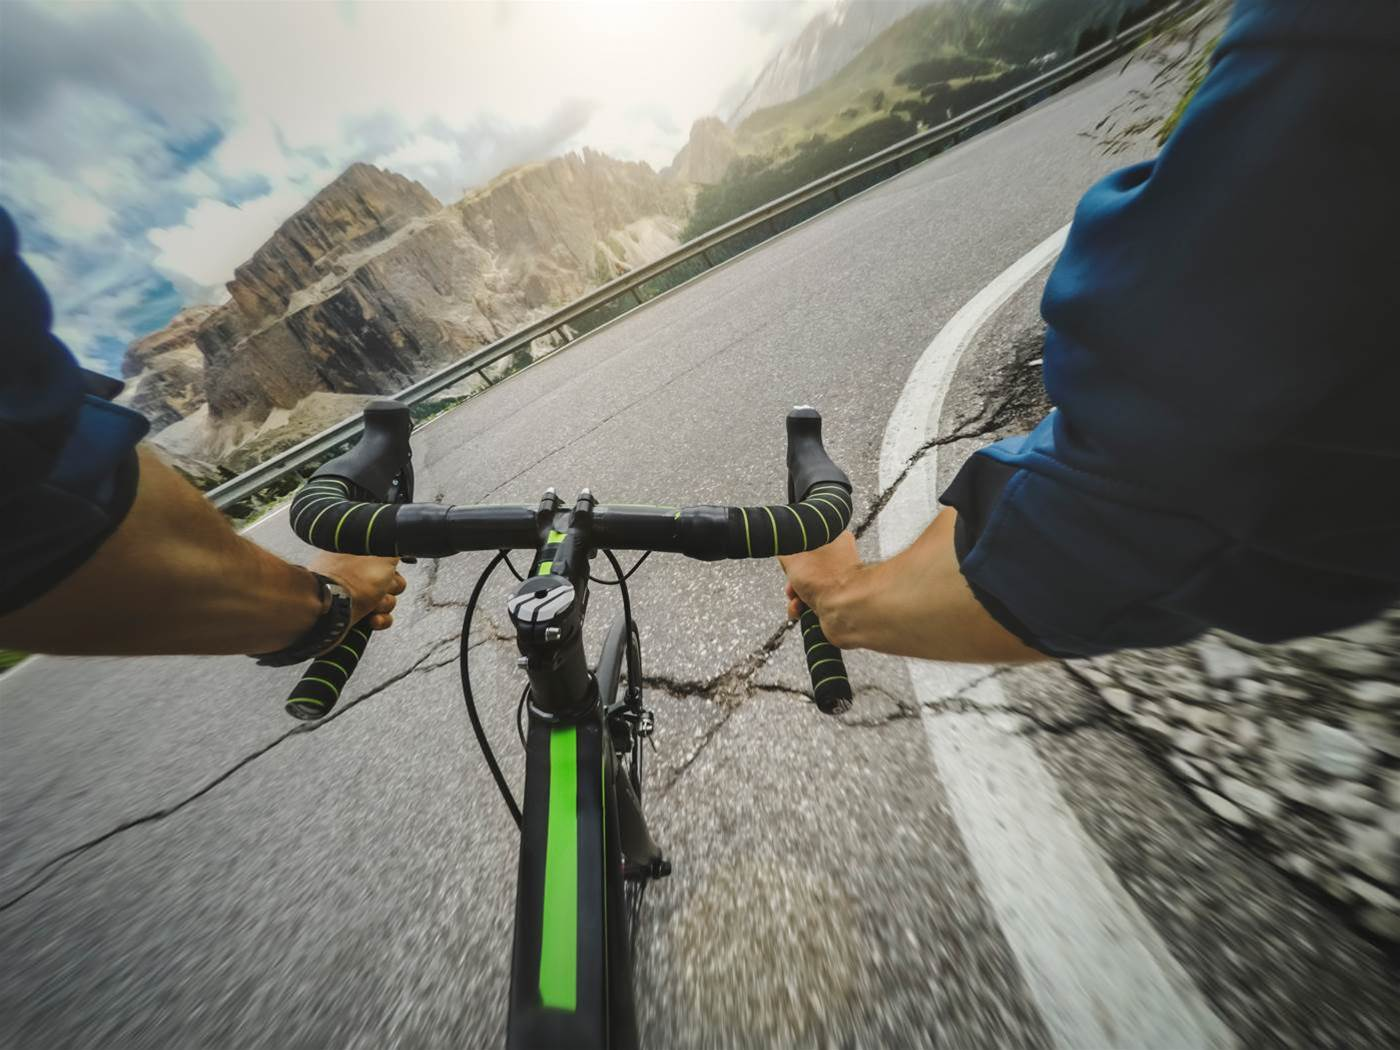 5 easy hacks to make your Go-Pro edits look So-Pro